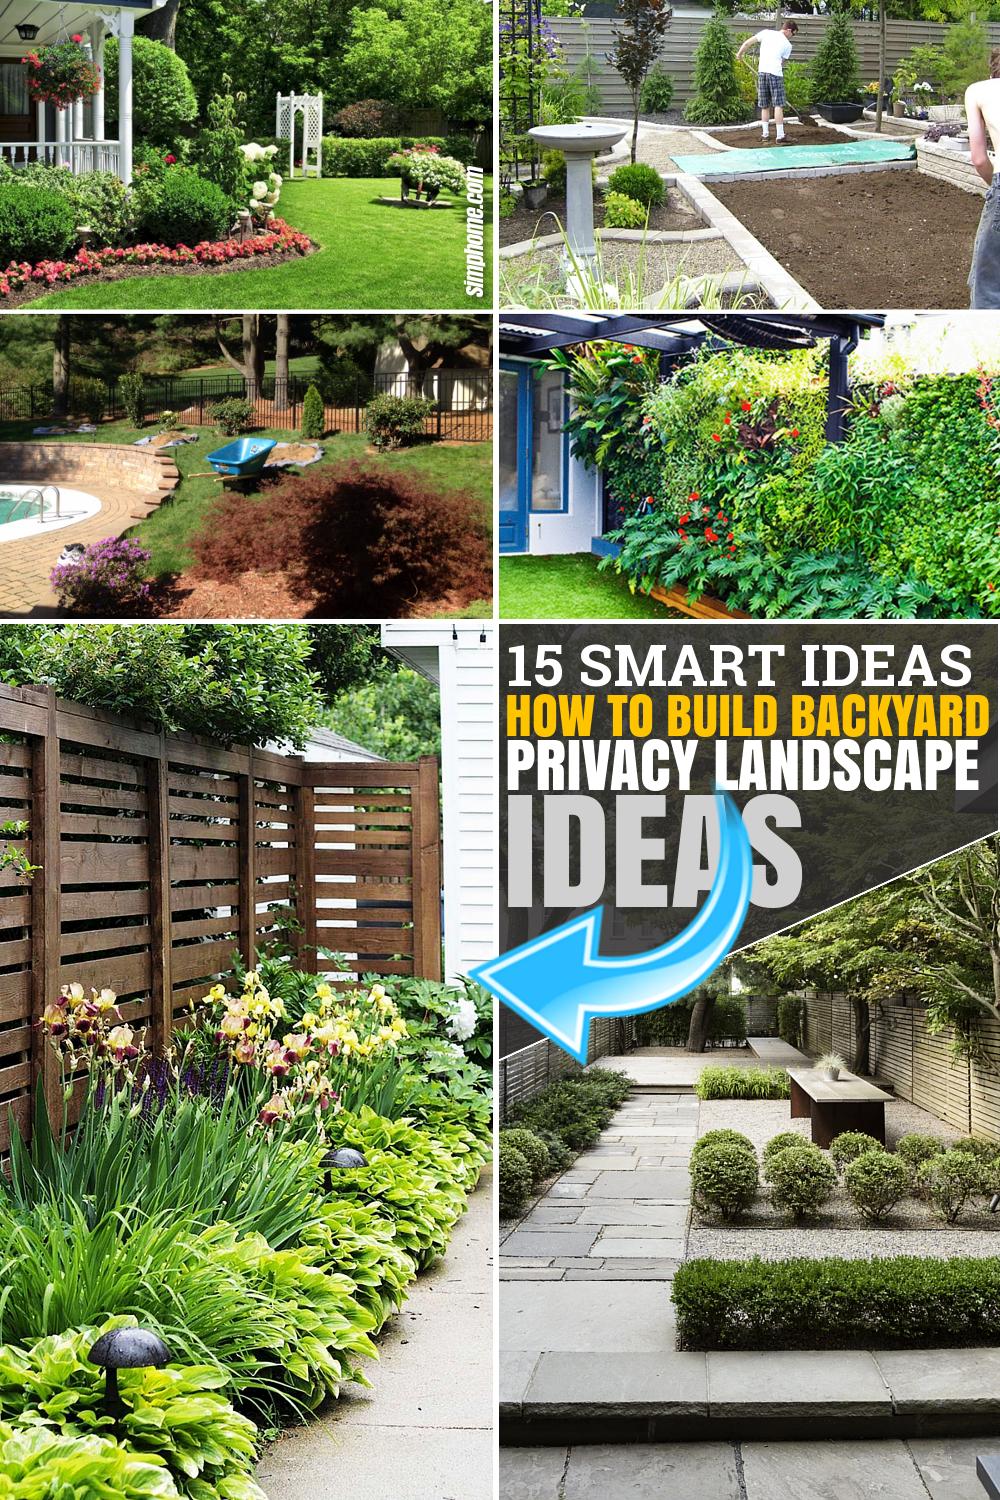 SIMPHOME.COM 15Ideas How to Make Backyard Privacy Landscaping Featured Image